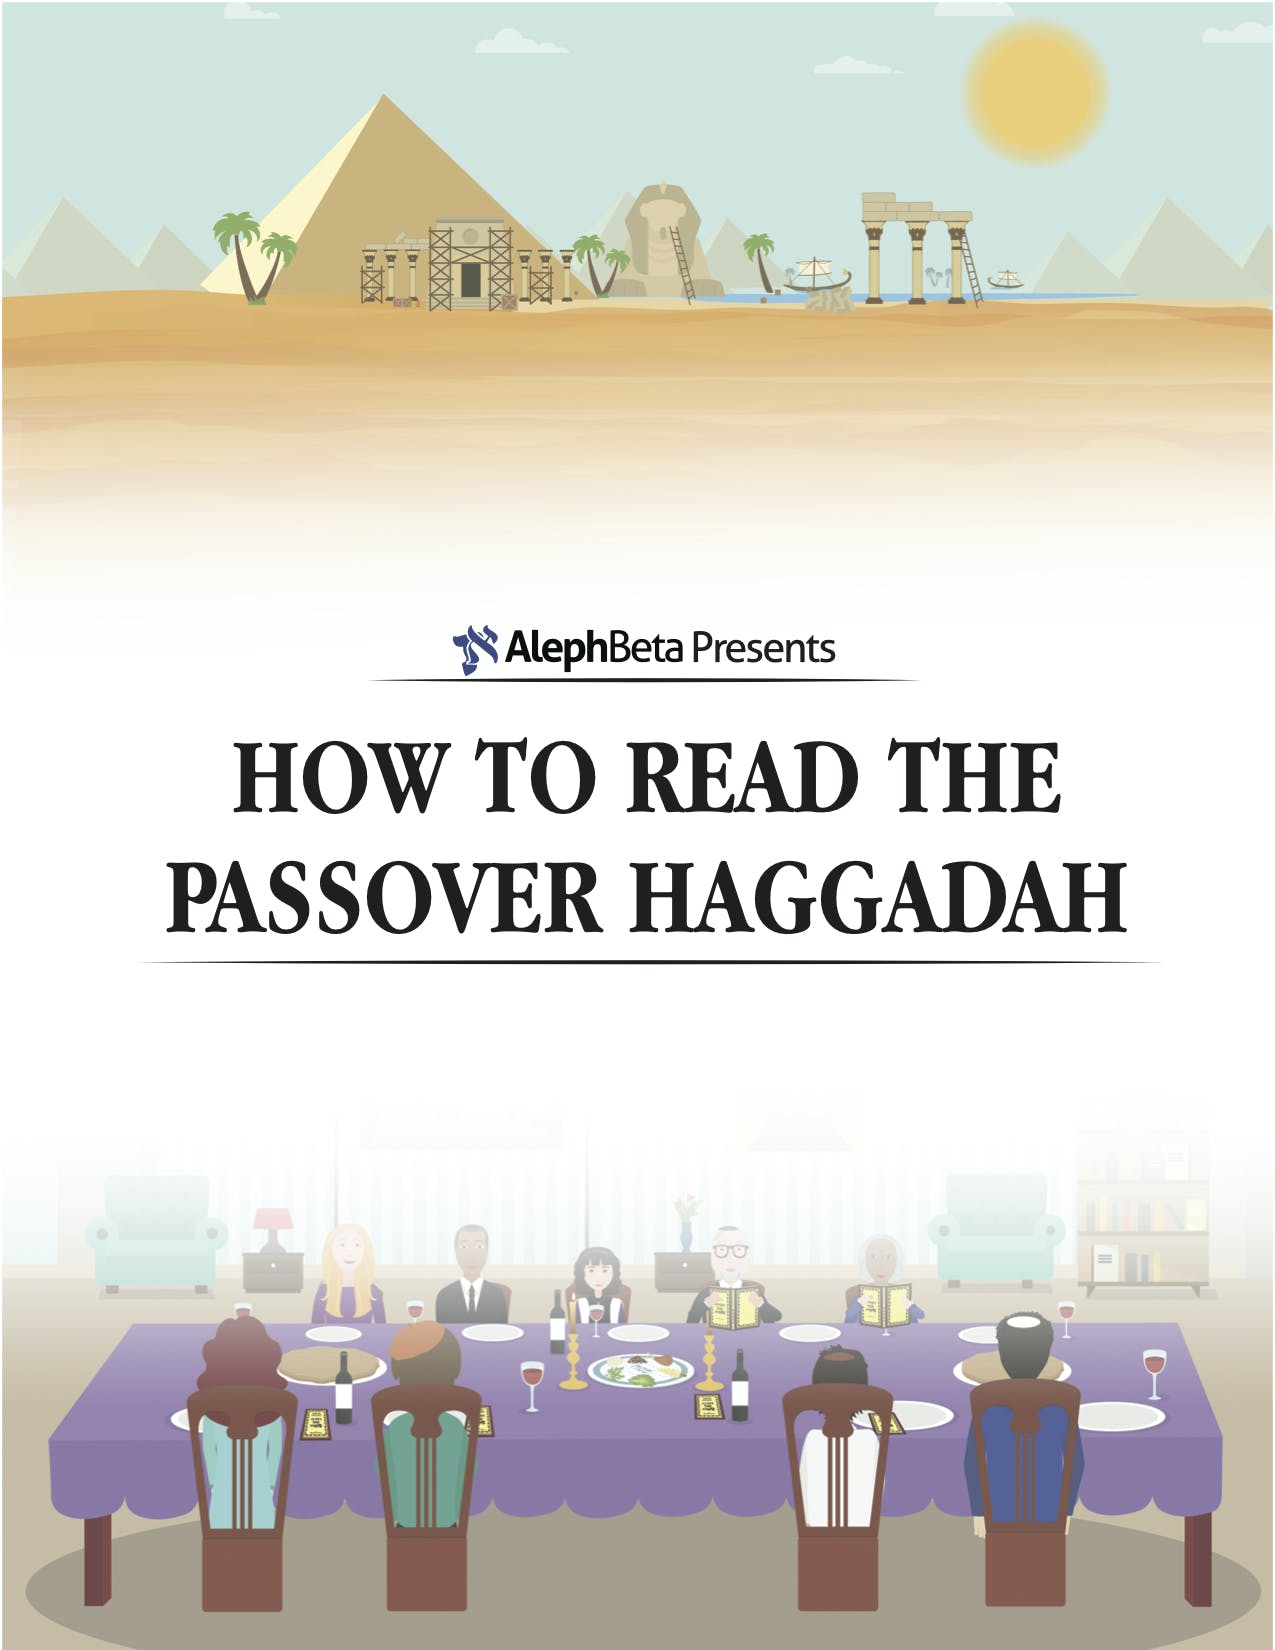 The Passover Seder in 2020